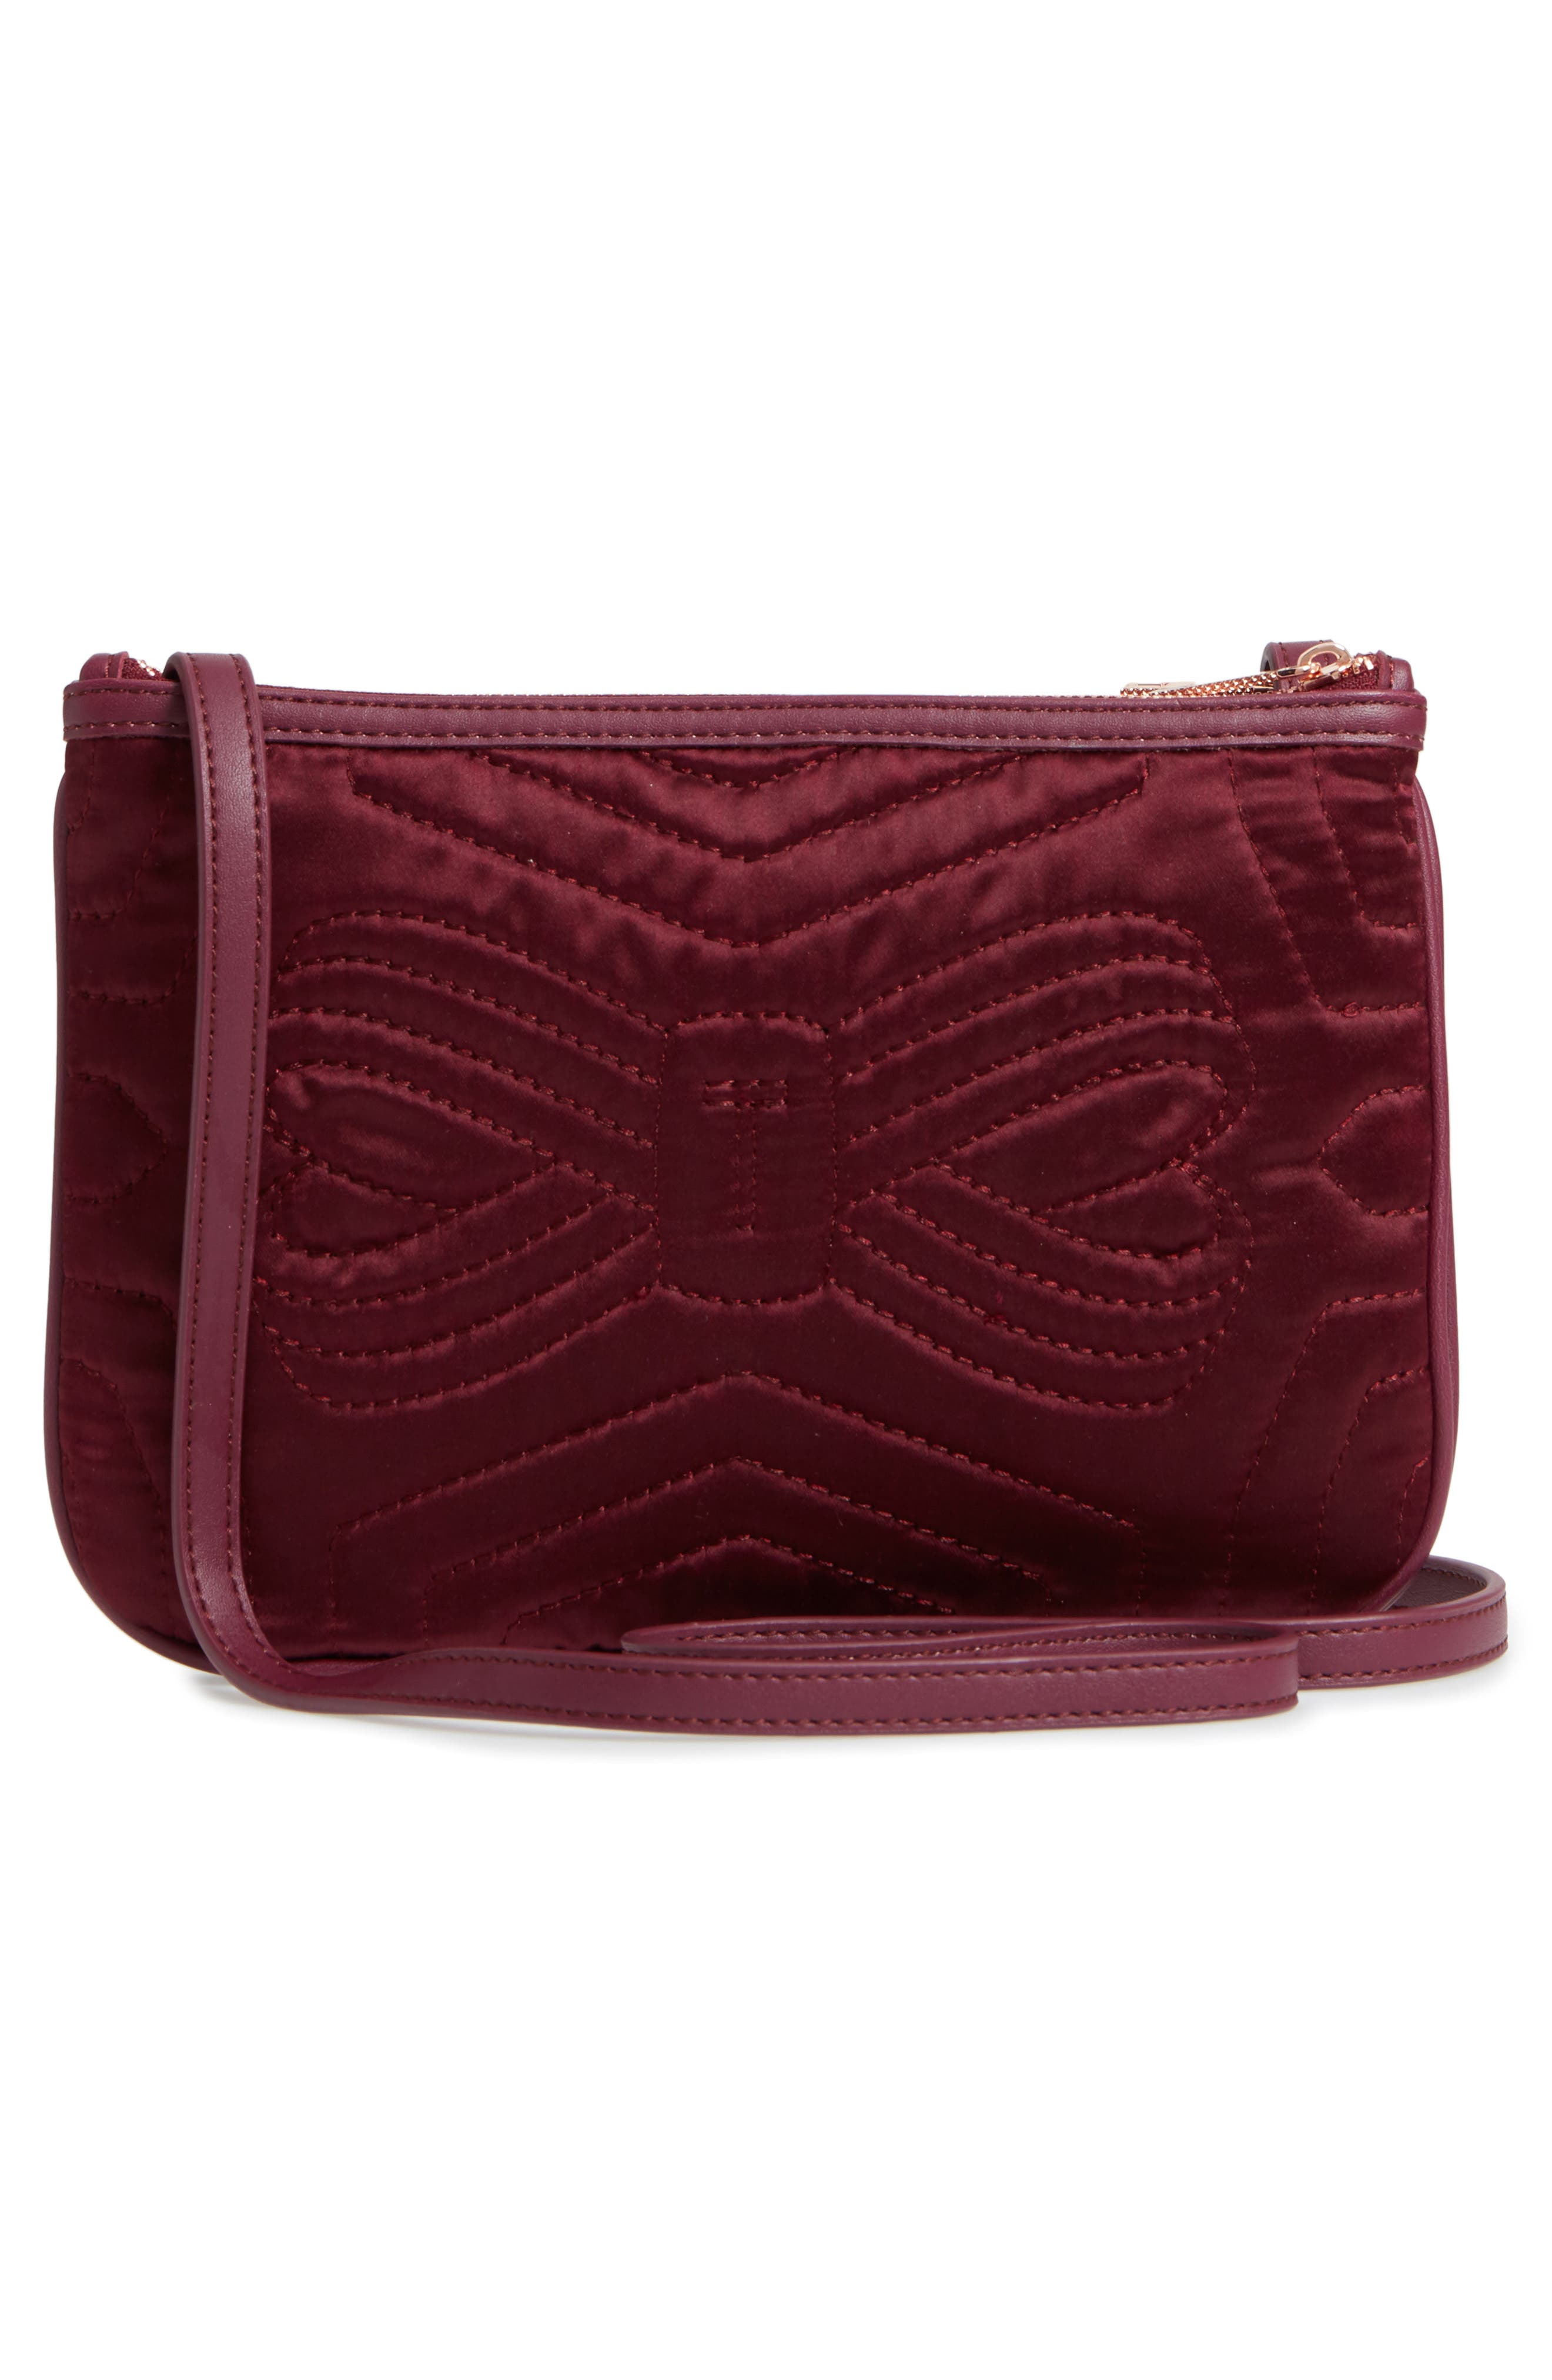 Quilted Bow Crossbody Bag,                             Alternate thumbnail 6, color,                             Maroon